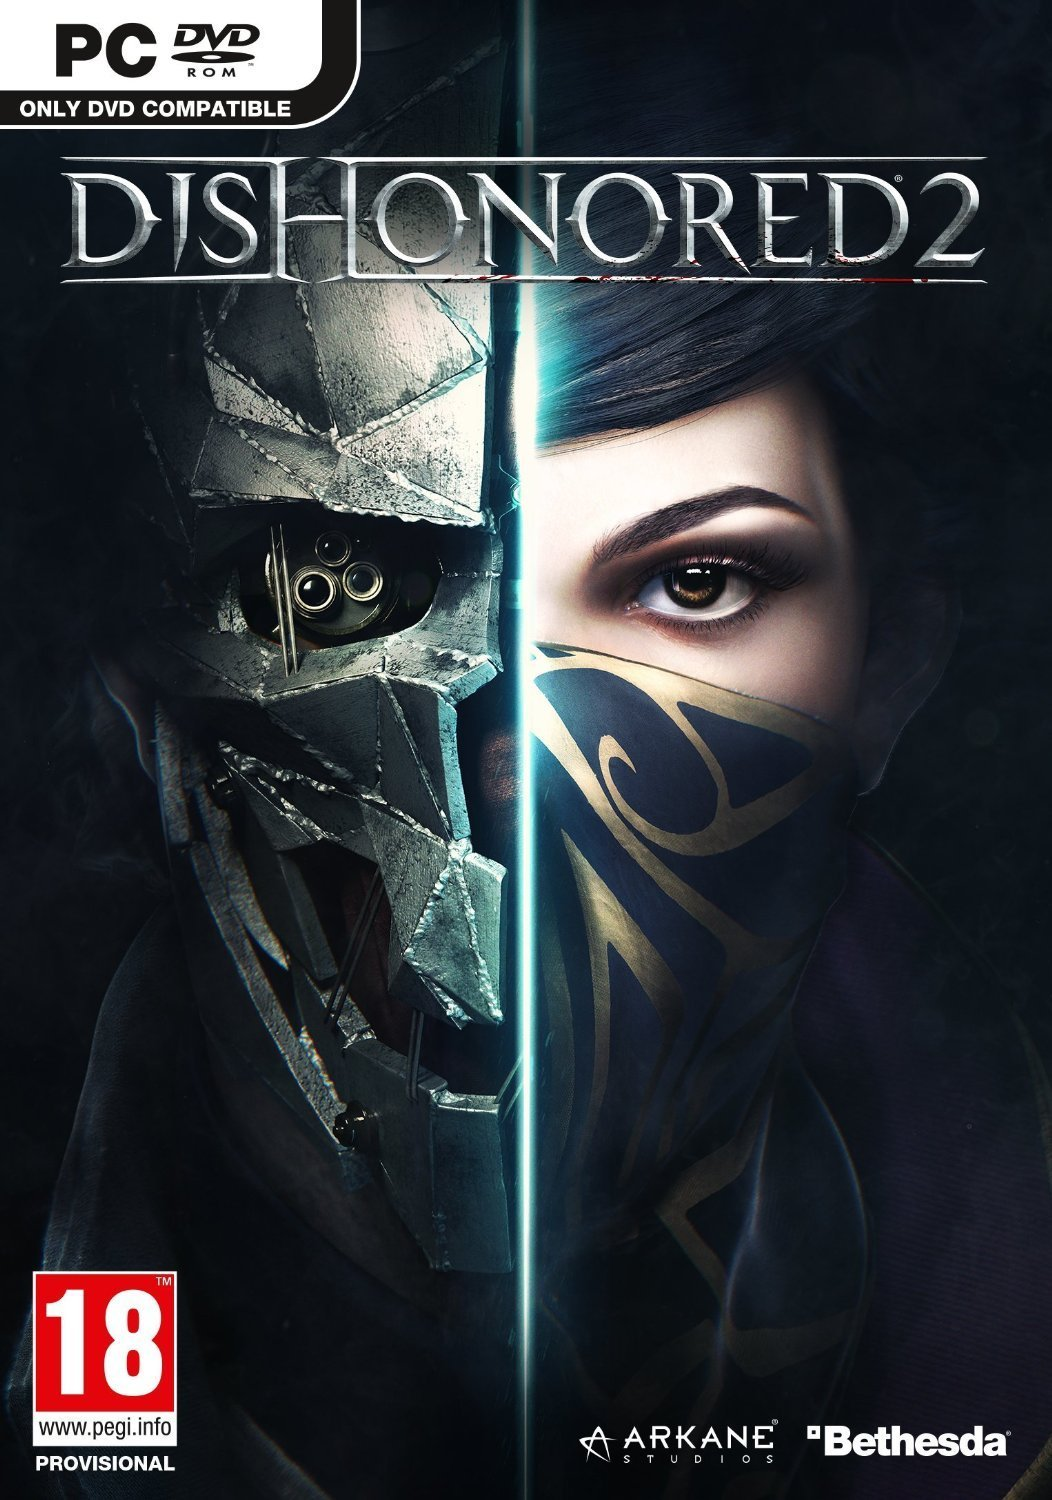 Poster for Dishonored 2